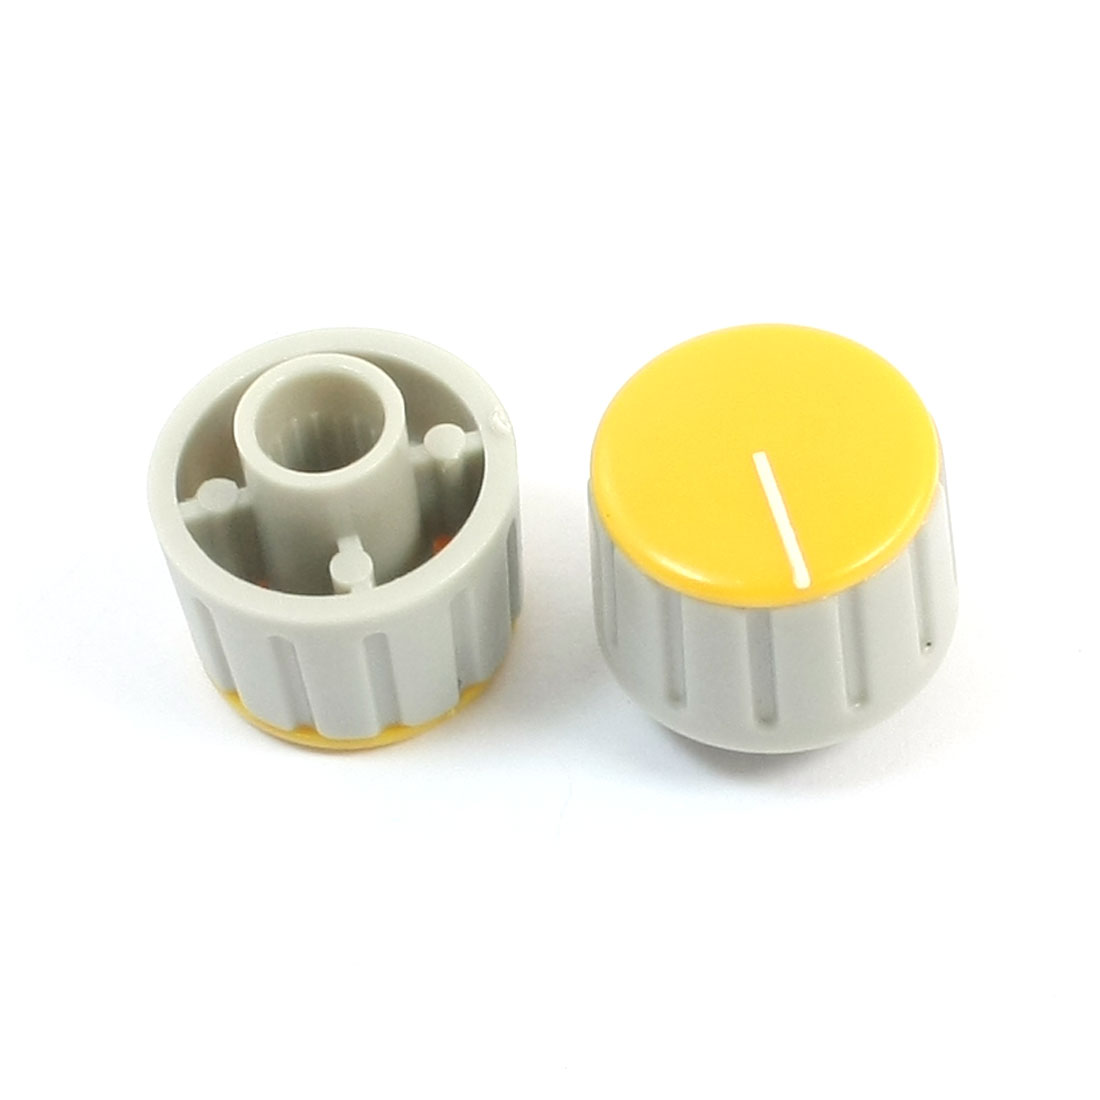 2pcs 6mm Shaft Dia Yellow Top Volume Knob Cap 16x12mm Gray for Potentiometer Pot